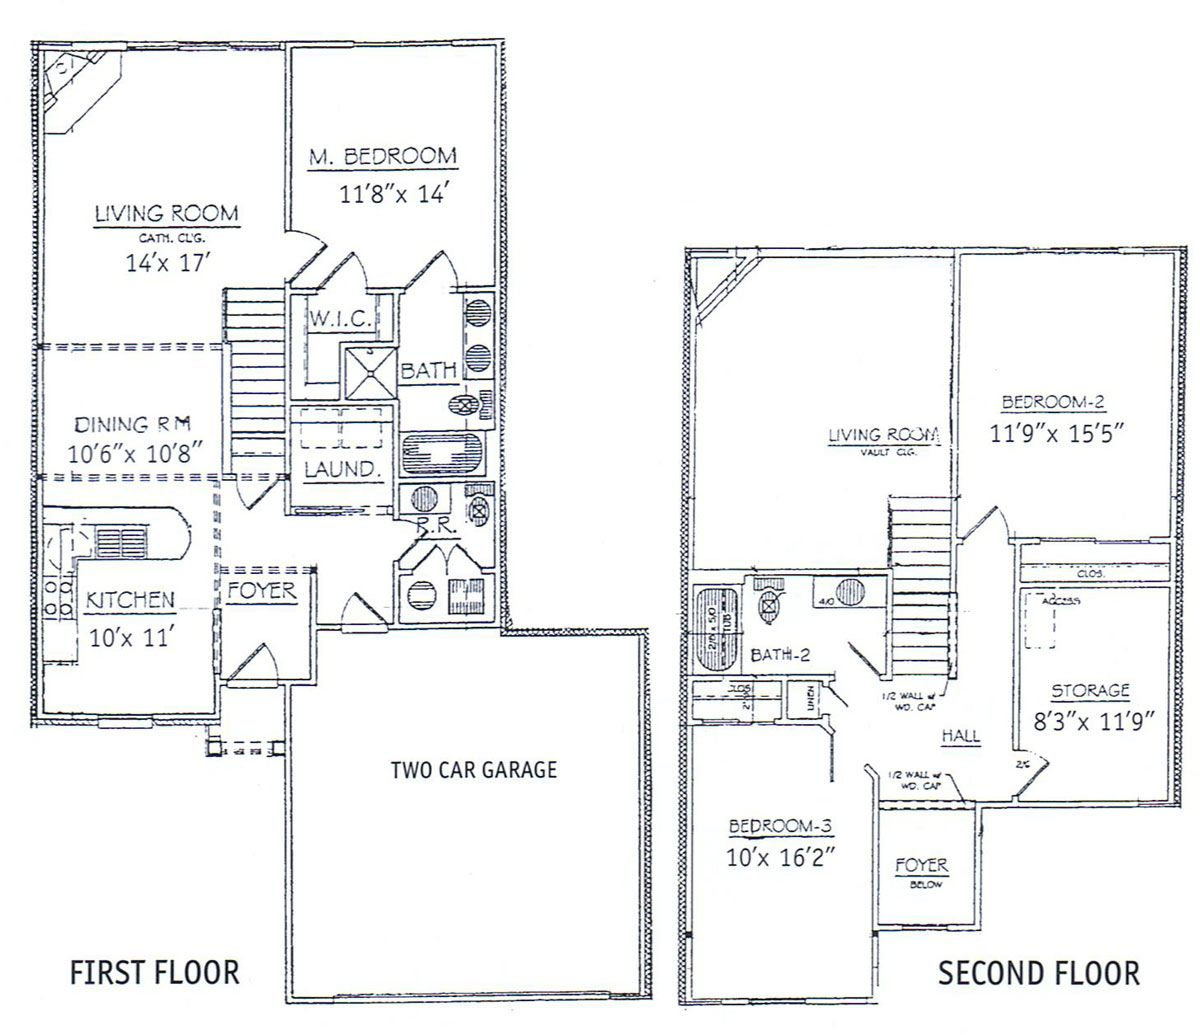 3 bedrooms floor plans 2 story bdrm basement the two for 2 story house layout